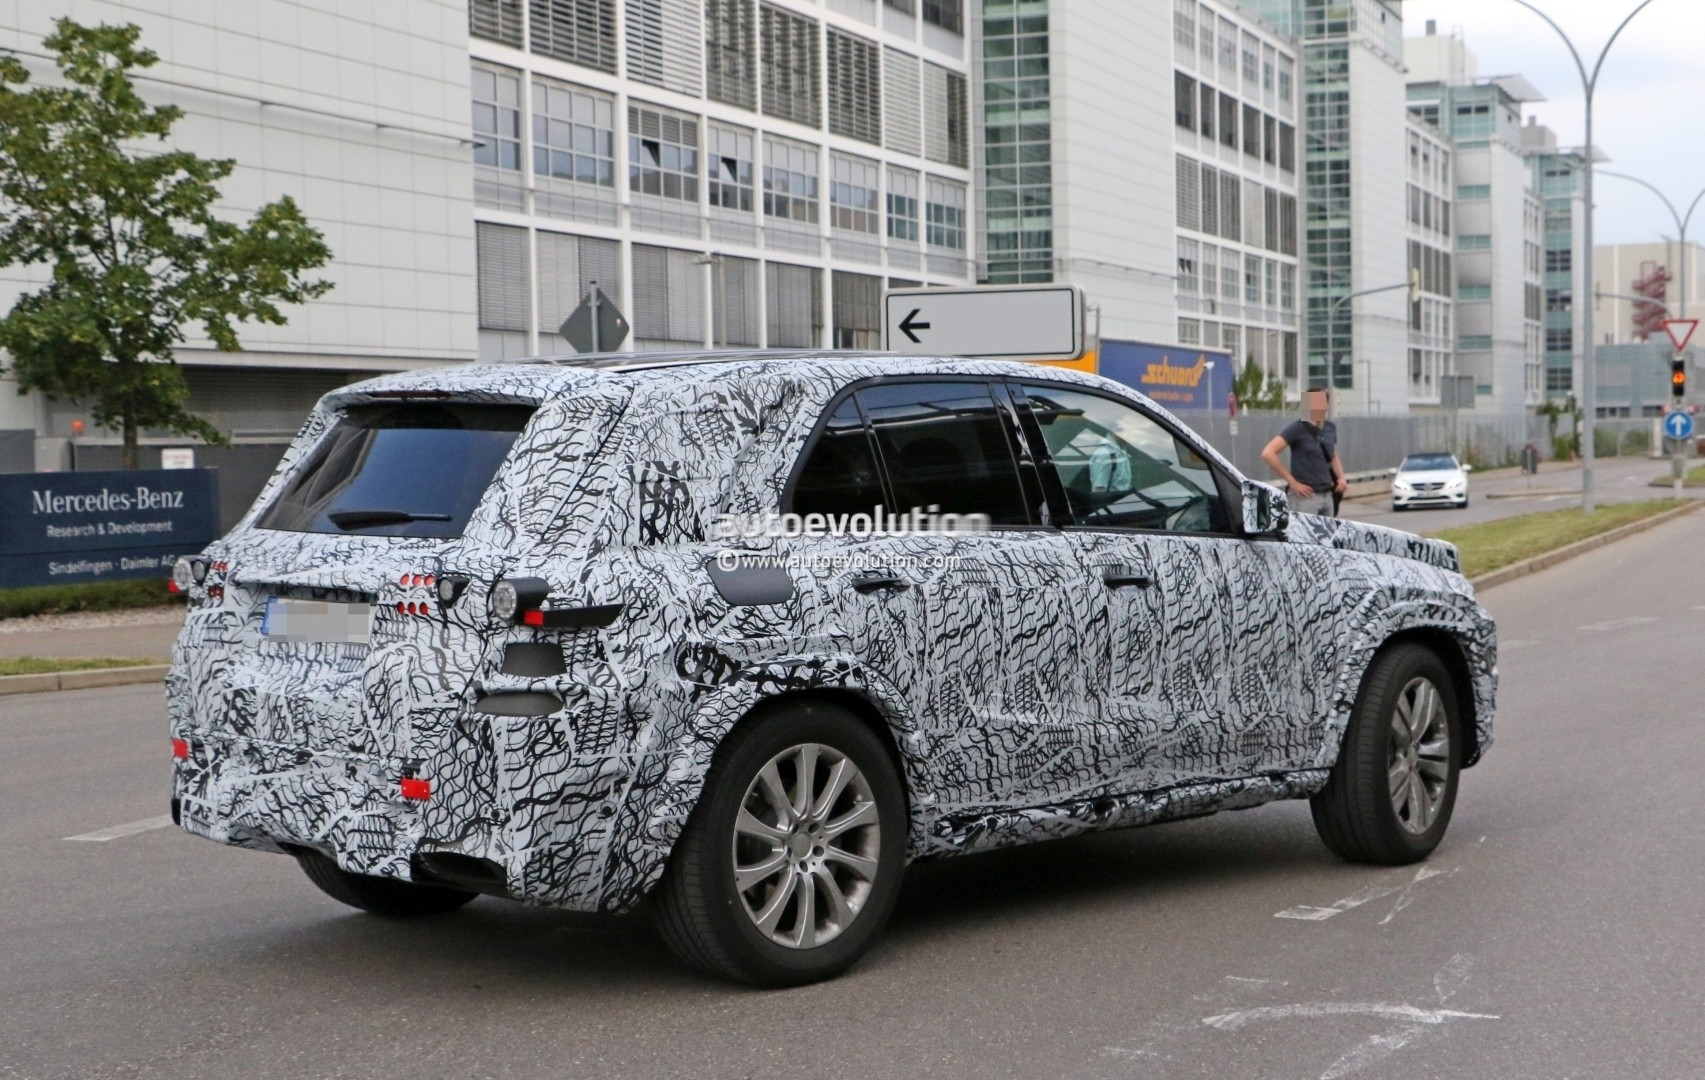 2019 mercedes benz gle spied up close will have a much for How much is a mercedes benz suv